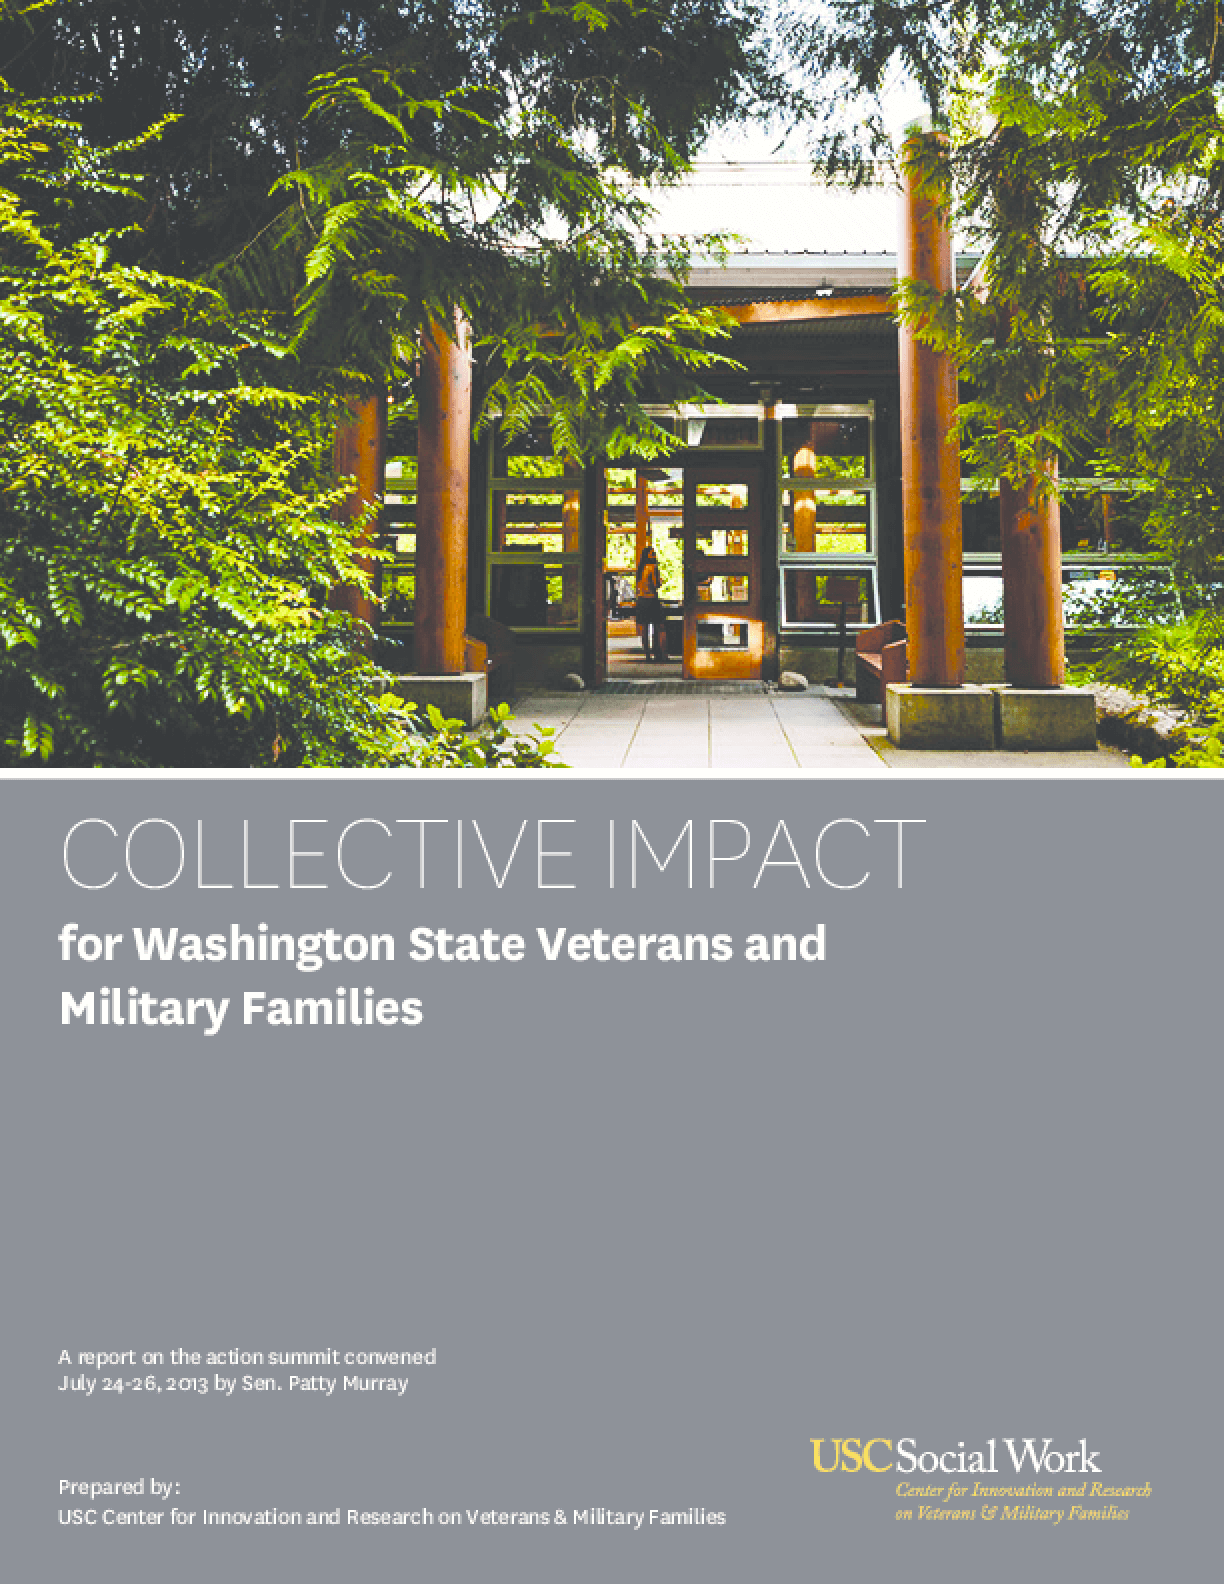 Collective Impact for Washington State Veterans and Military Families